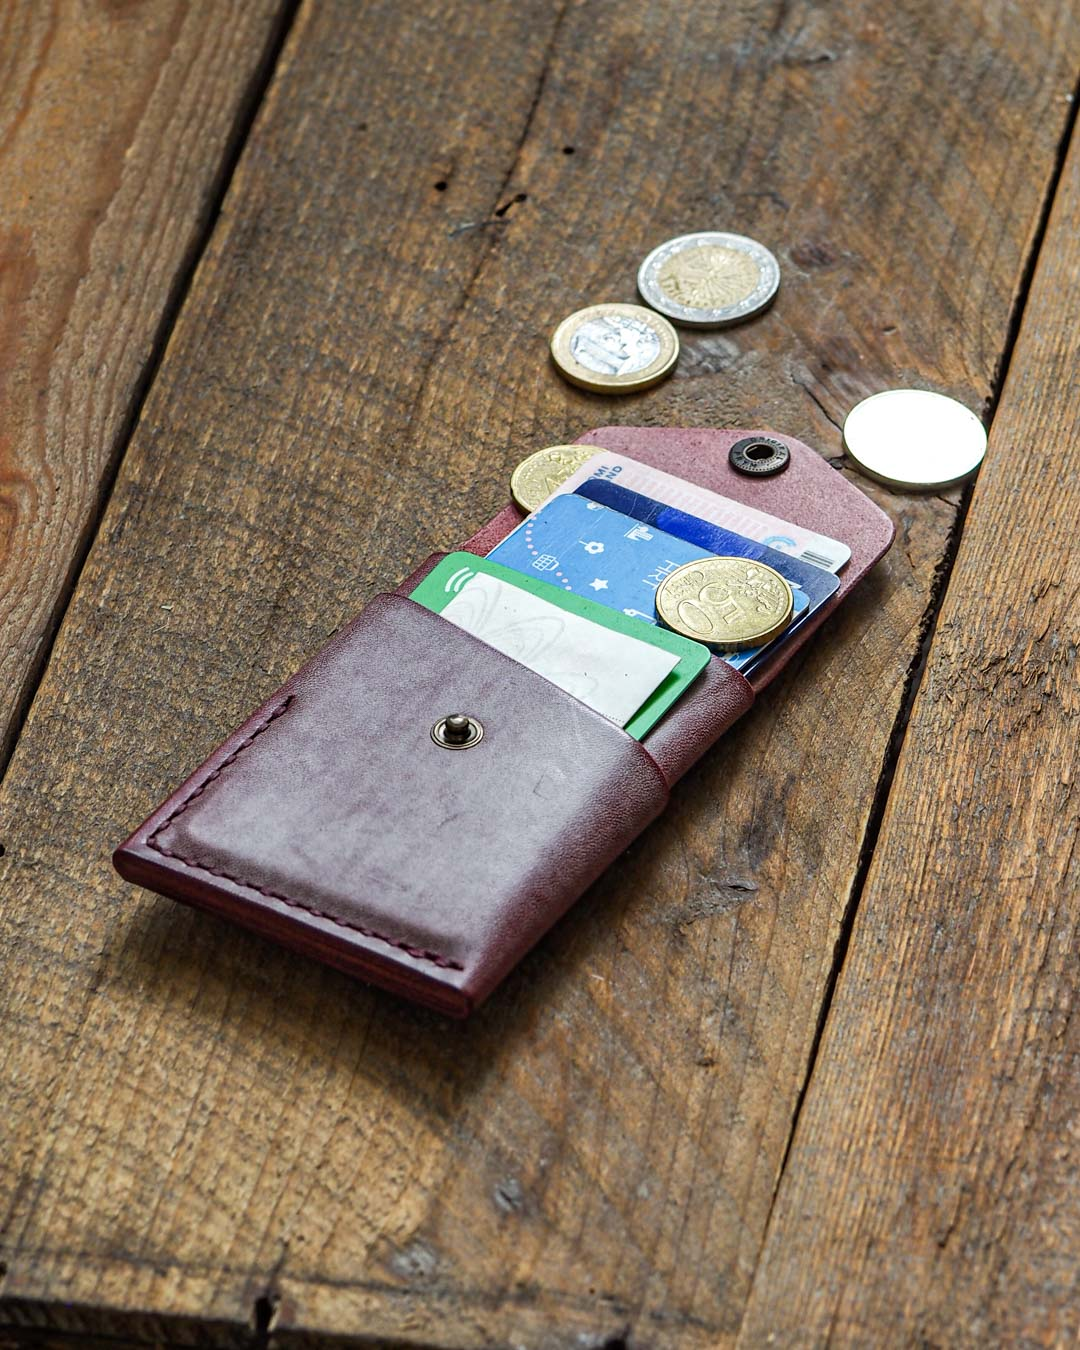 Luava handcrafted leather overfold wallet ghost burgundy conceria la bretagna cardholder card holder handmade in finland angle front open in use